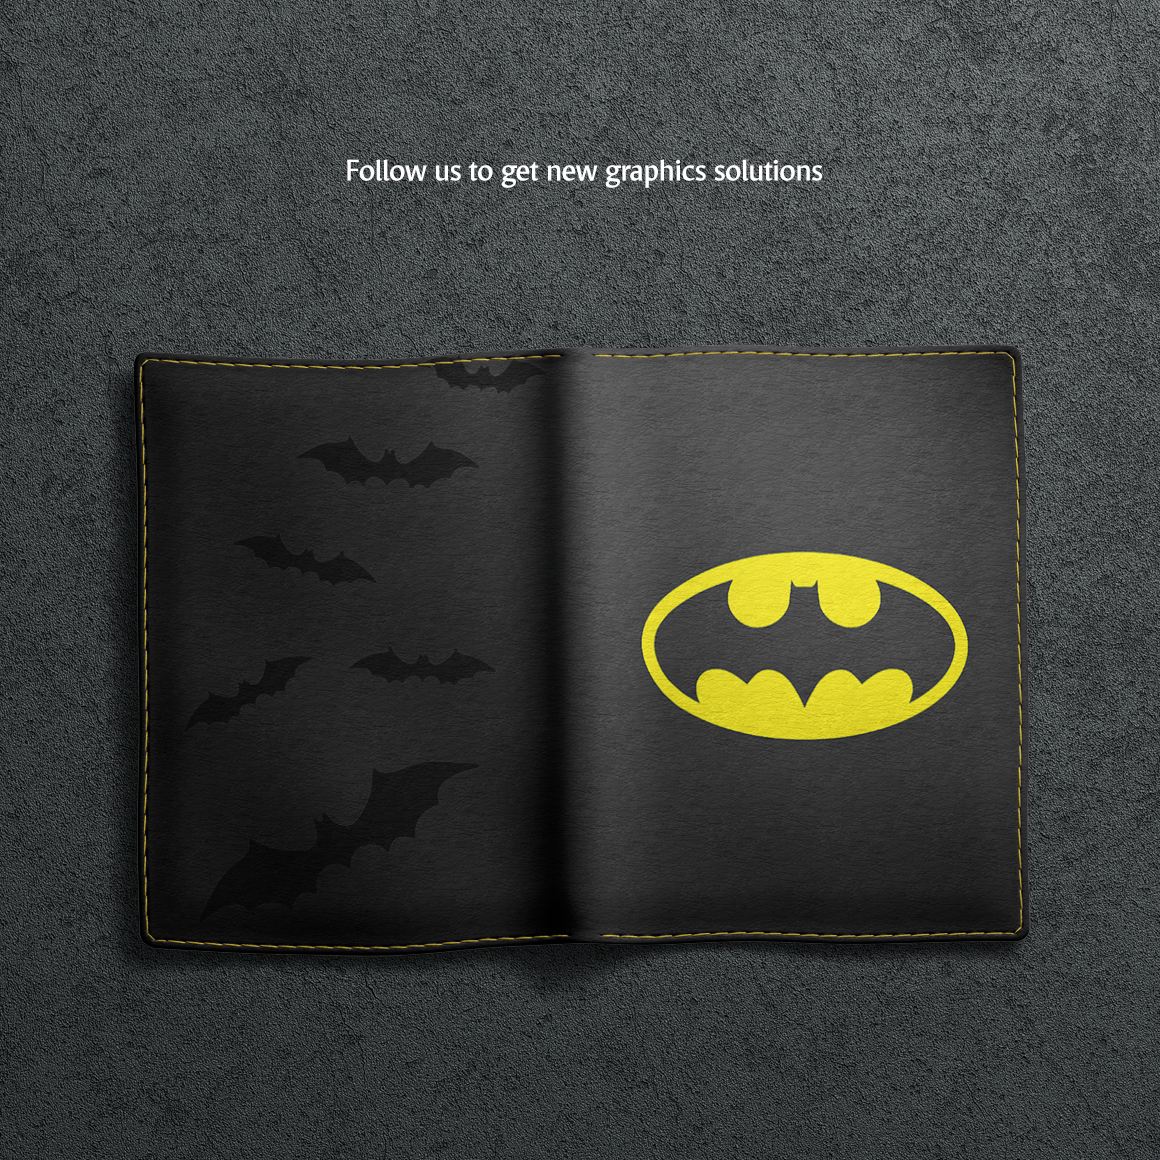 Leather Passport Cover Mockup example image 8